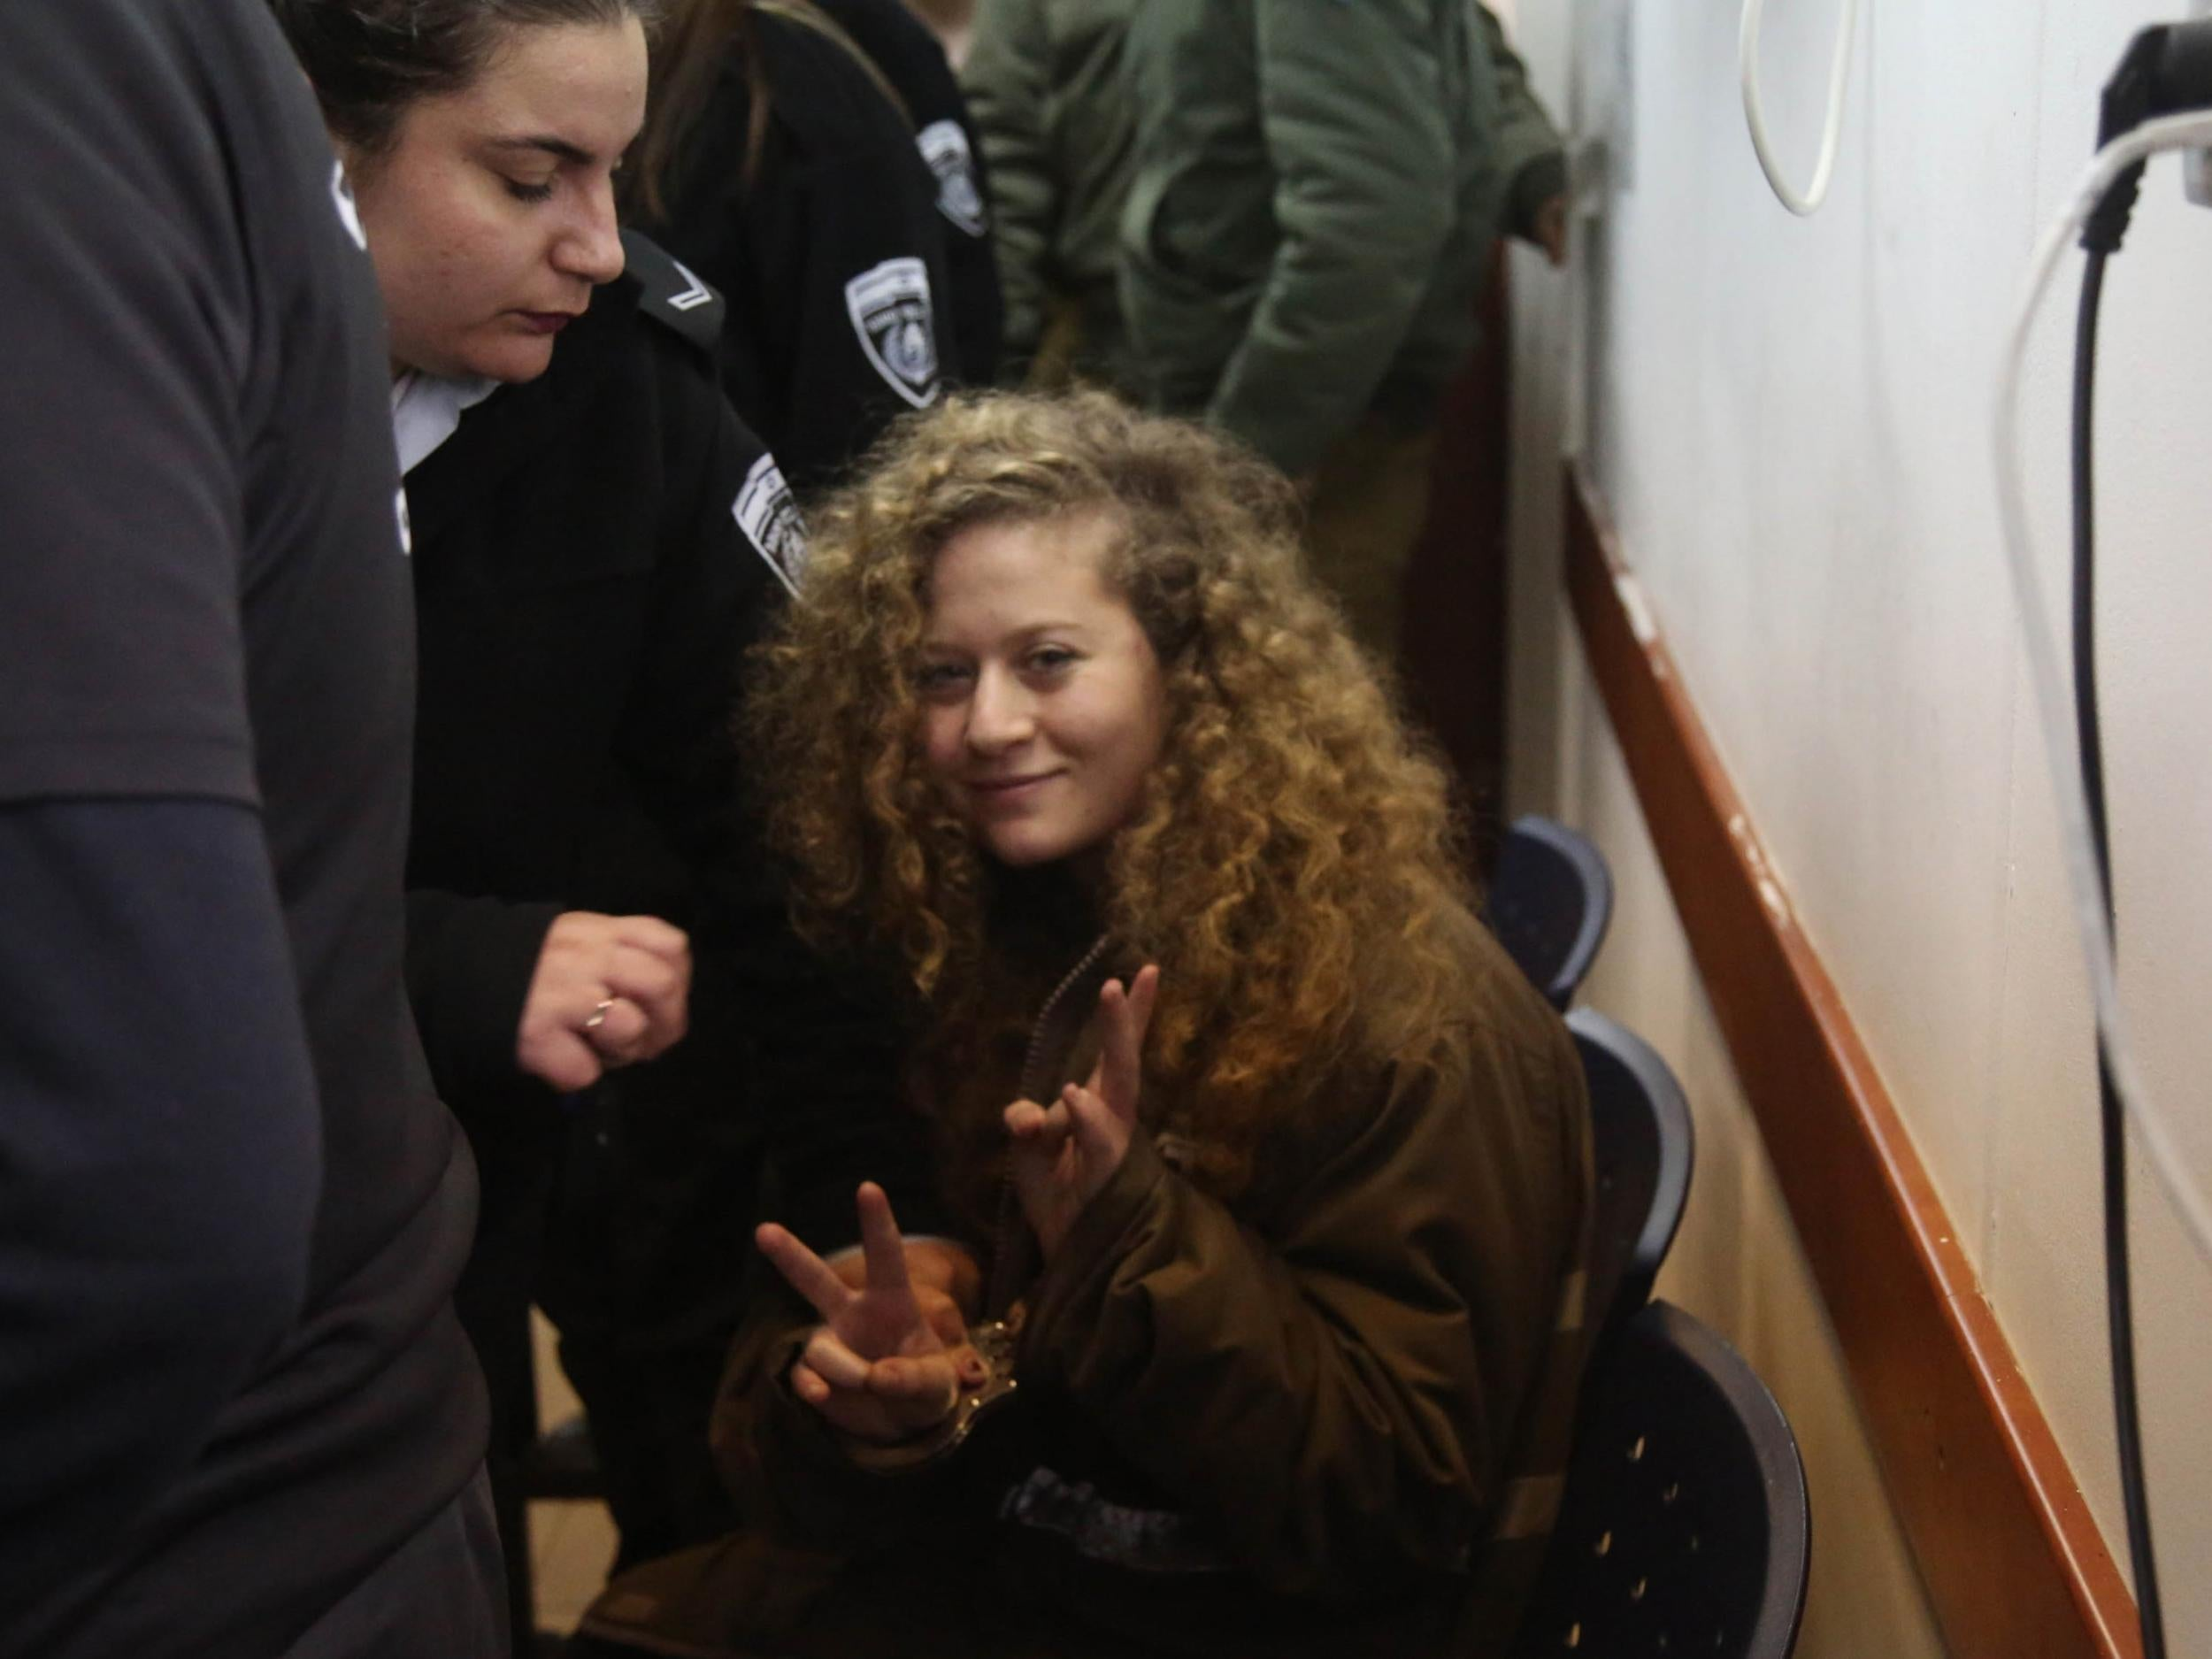 Israeli military court orders teenager who slapped soldier to stay in jail for another month